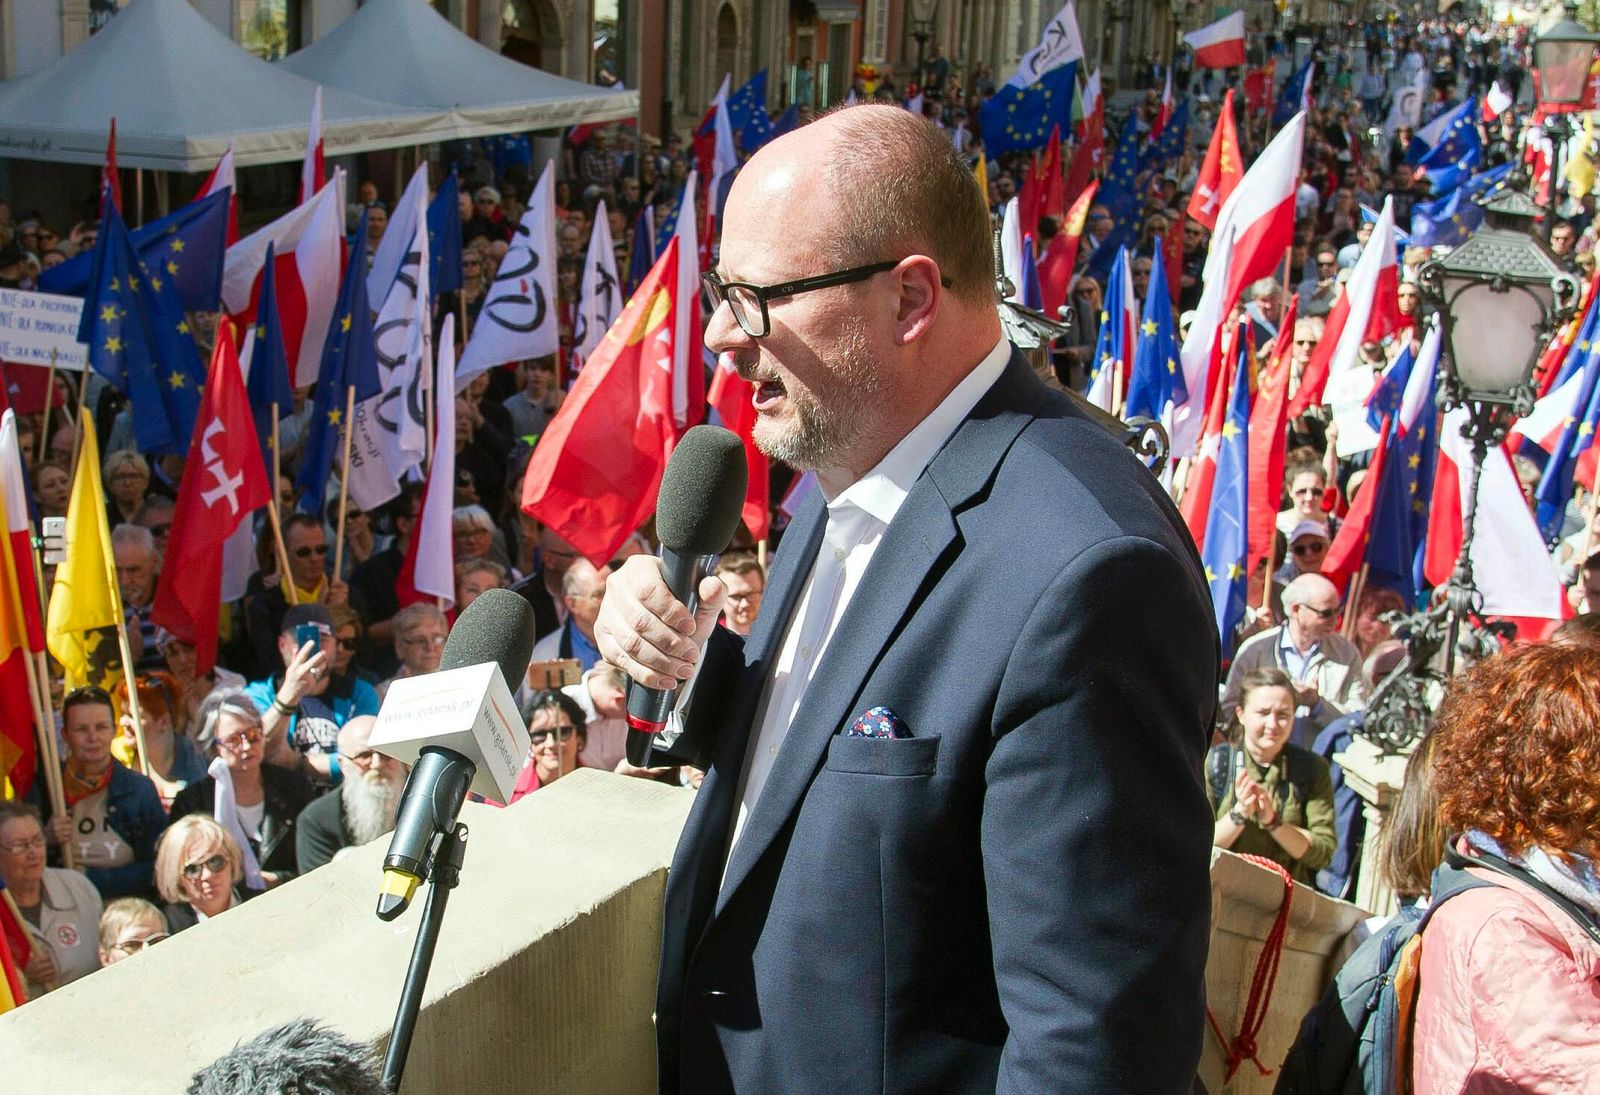 In this Saturday, April 21, 2018 file photo, the mayor of Gdansk, Pawel Adamowicz addresses a rally organized in protest against a recent gathering by far-right groups in this Baltic coast city, in Gdansk, Poland.{ } (AP Photo/Wojciech Strozyk, File)